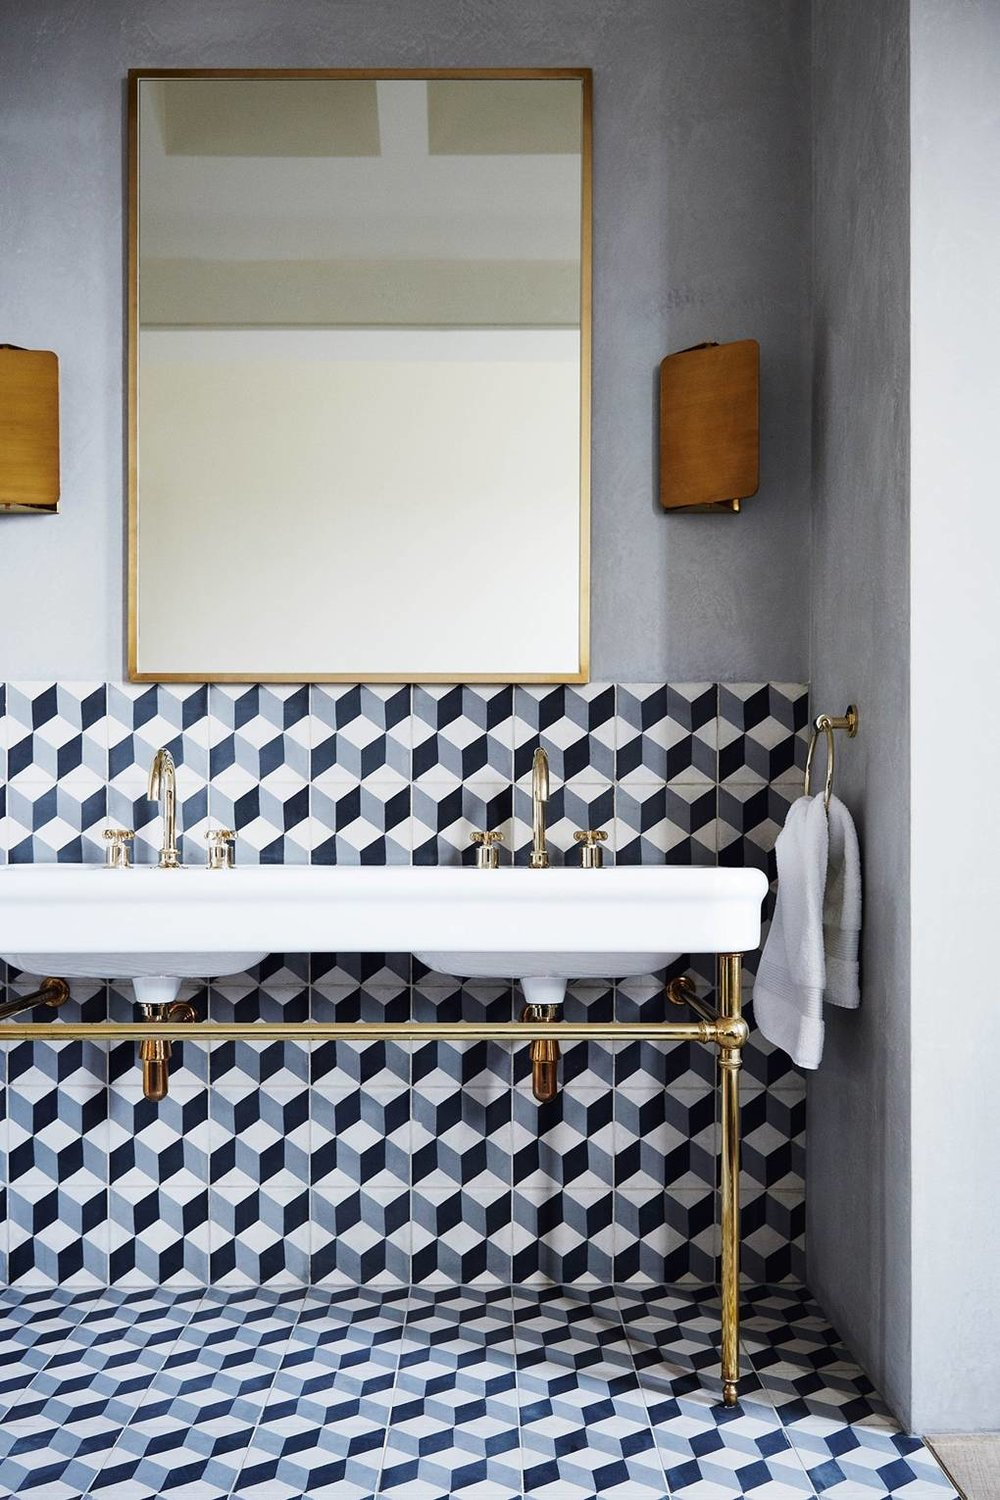 Bathroom Design by Suzy Hoodless via House & Garden